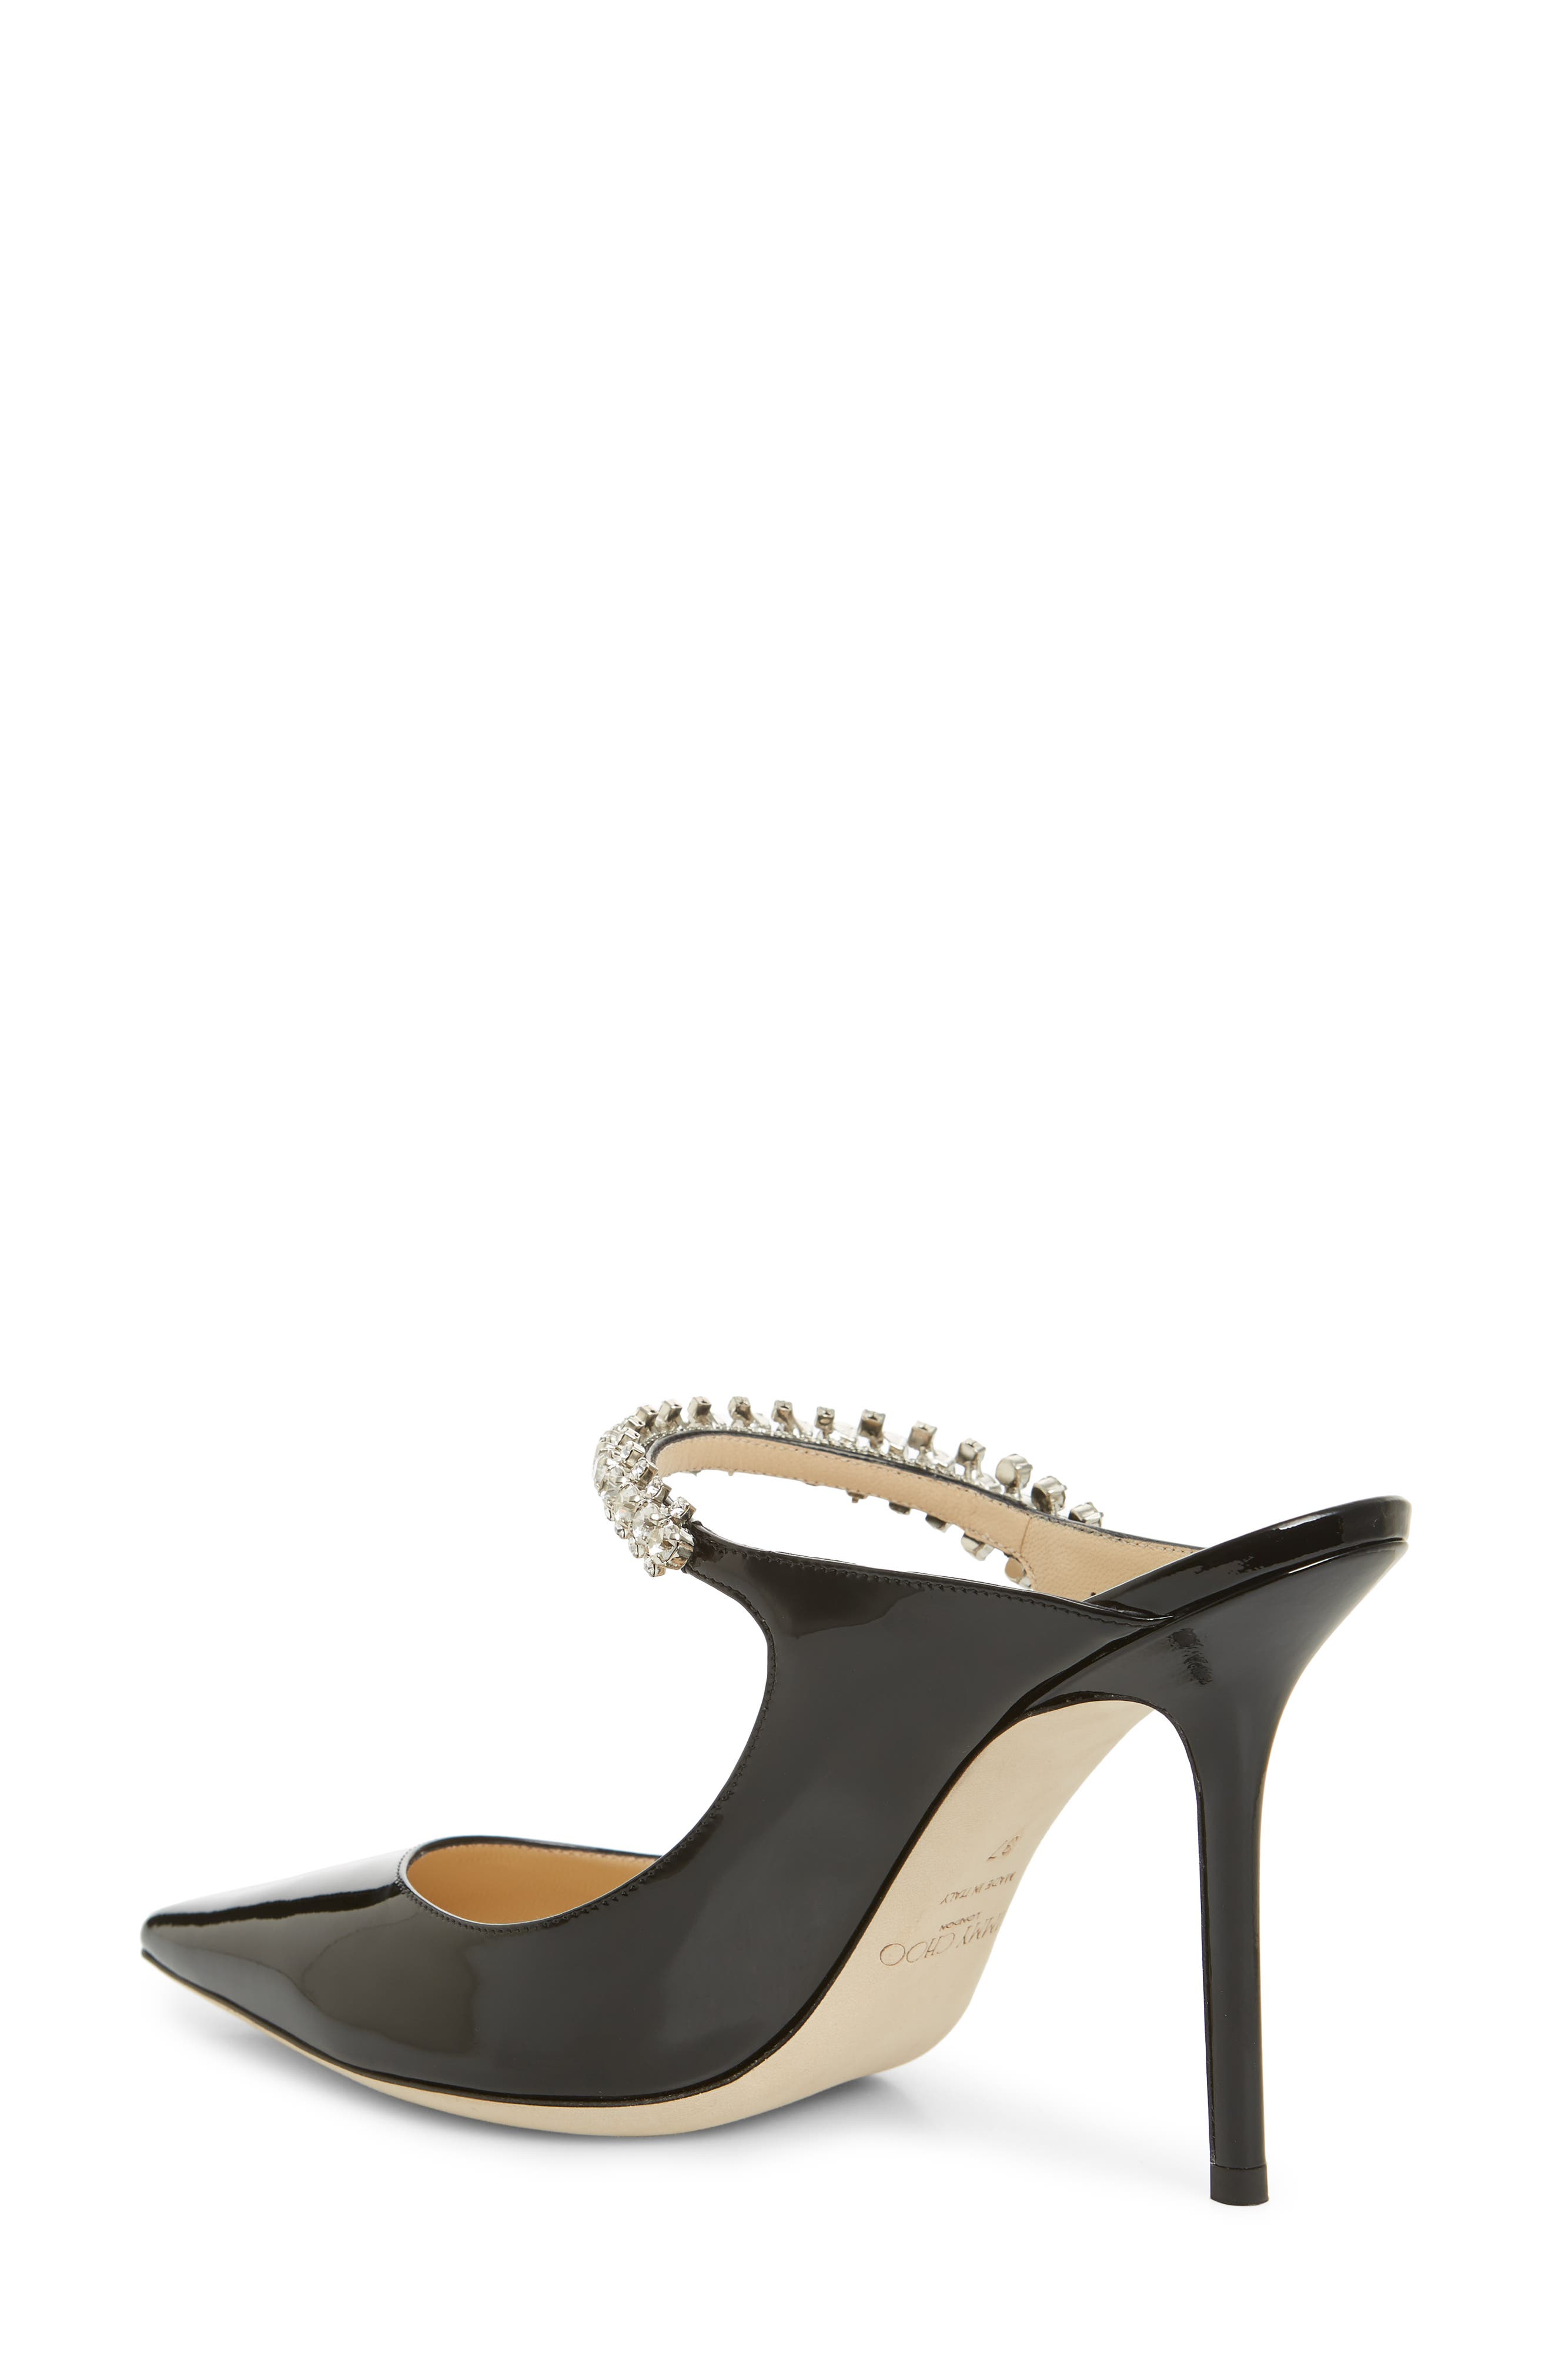 JIMMY CHOO, Embellished Mule, Alternate thumbnail 2, color, BLACK